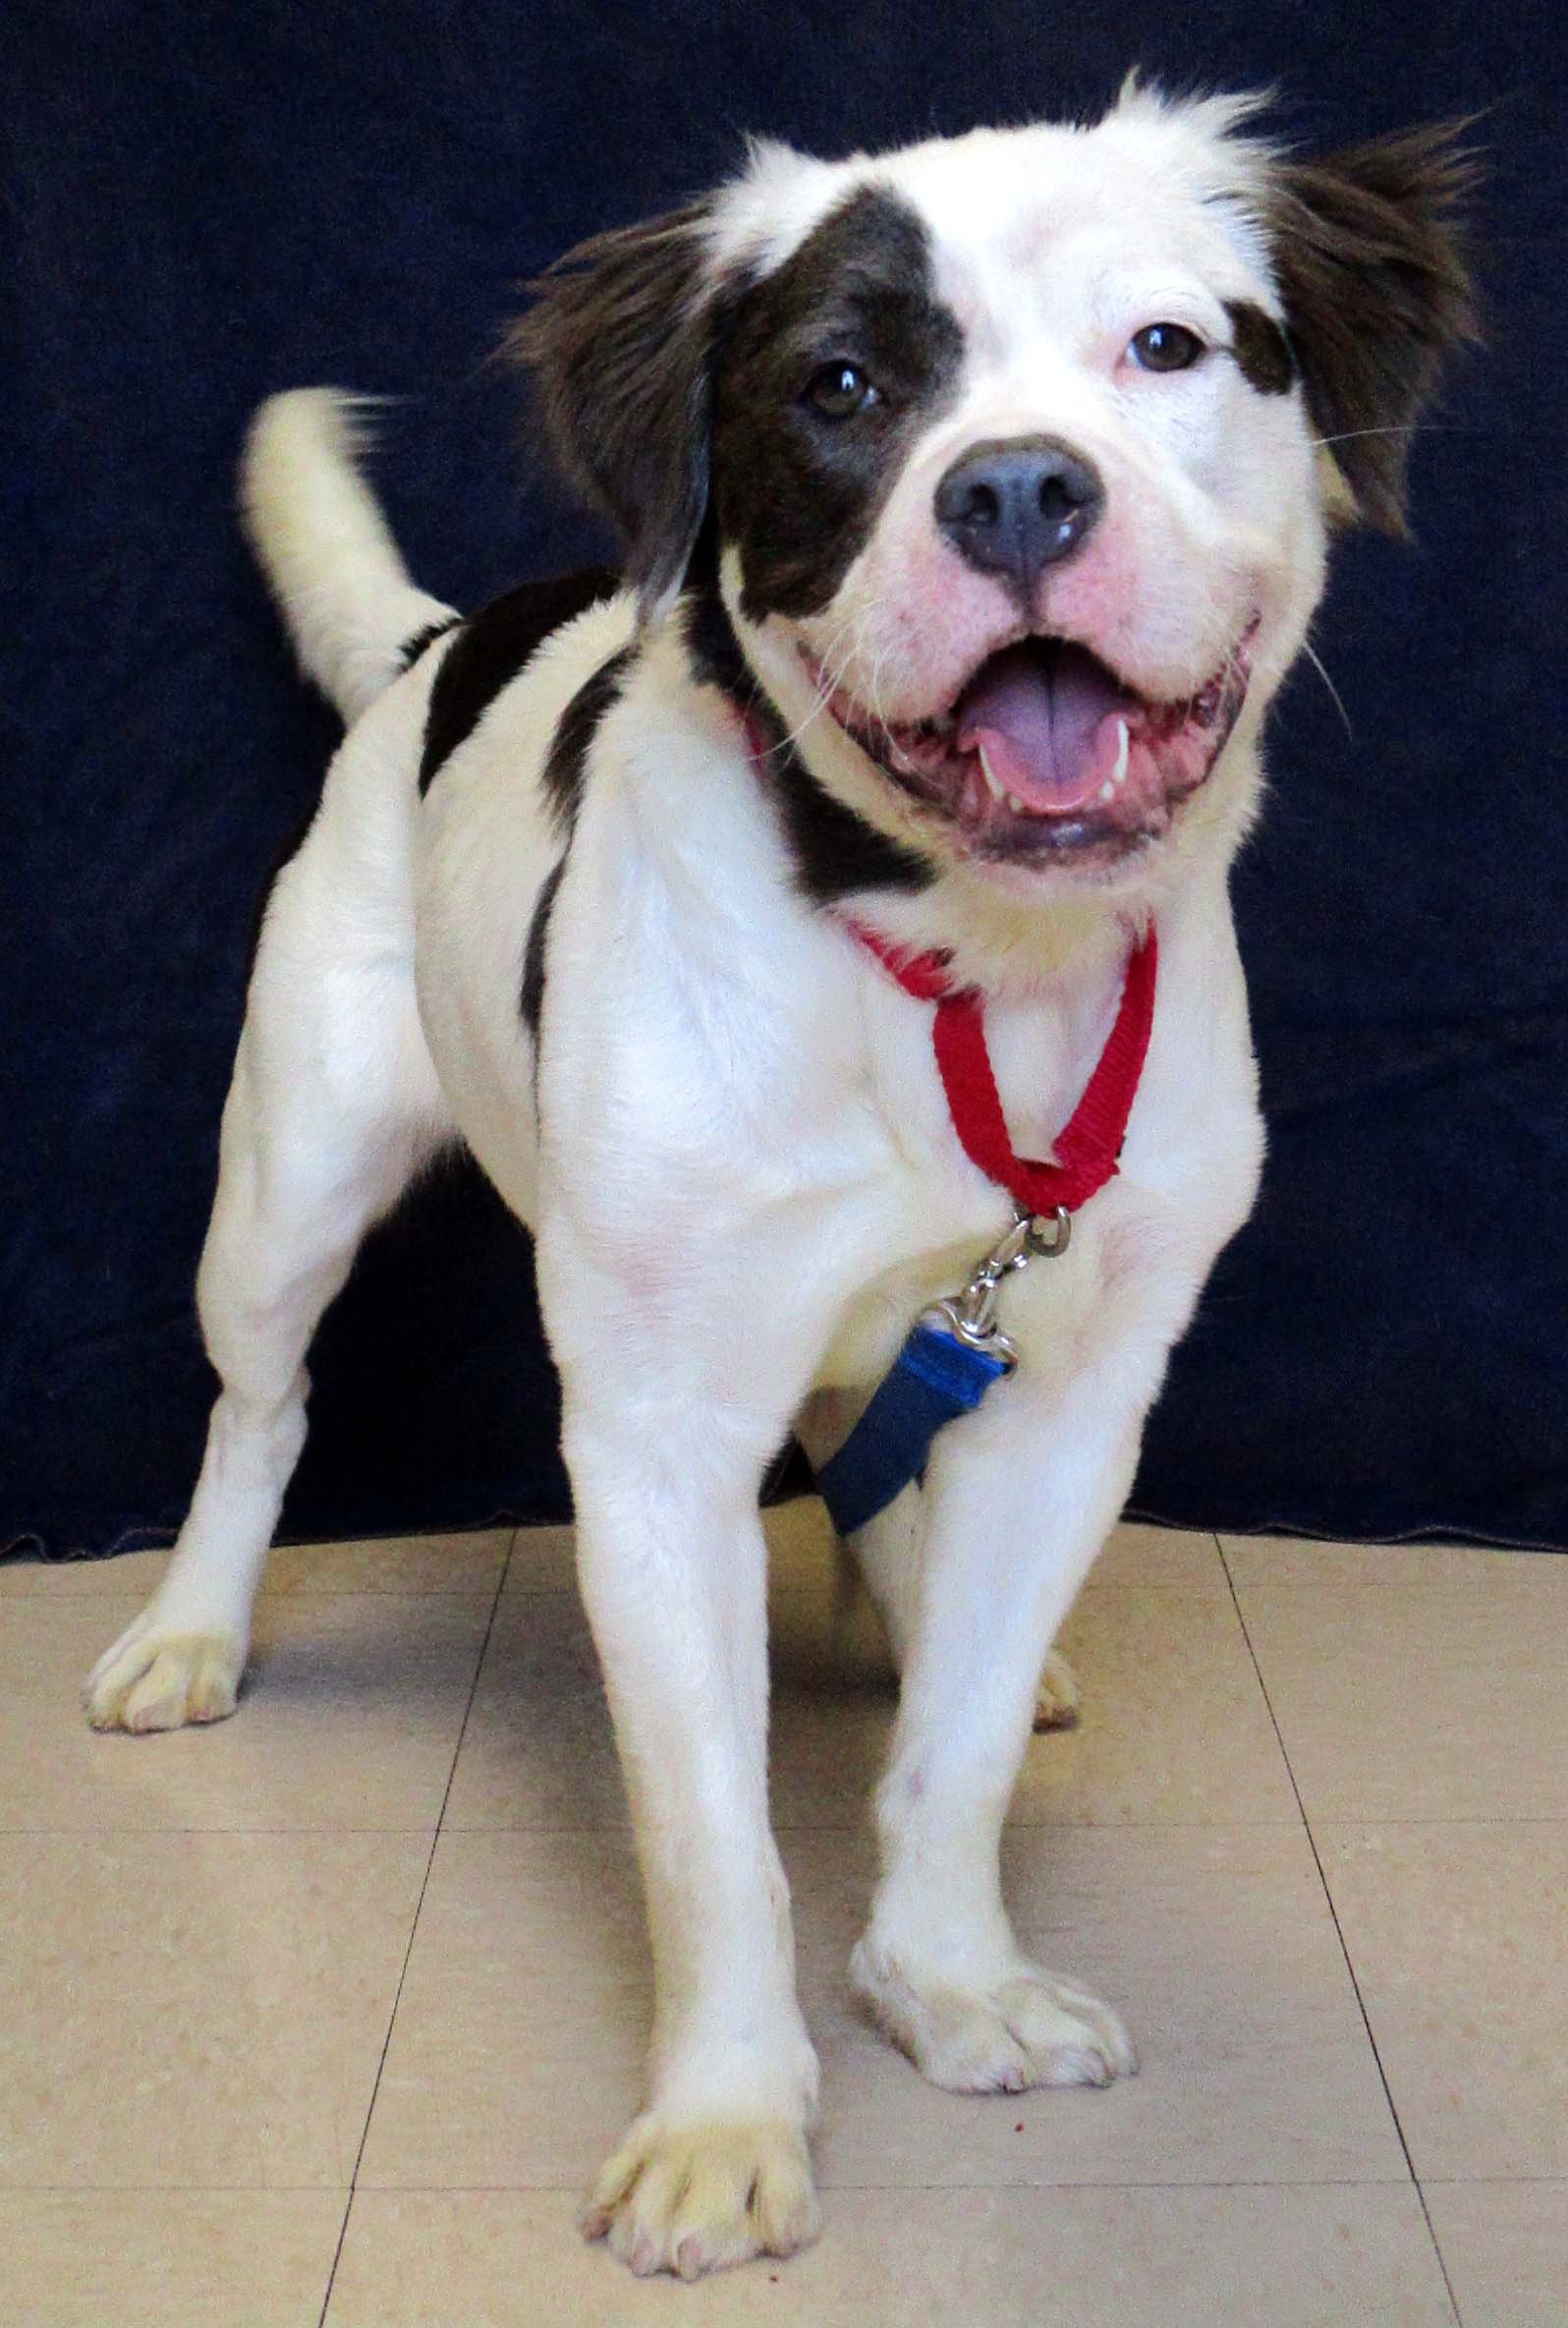 Piper is a 1 year old Spaniel Mix. Is your household looking for a dog that has done well with other animals at the shelter and has been very social with people? If so, she is a must-meet dog for you. Give her 5 minutes of your time and she will leave you charmed!